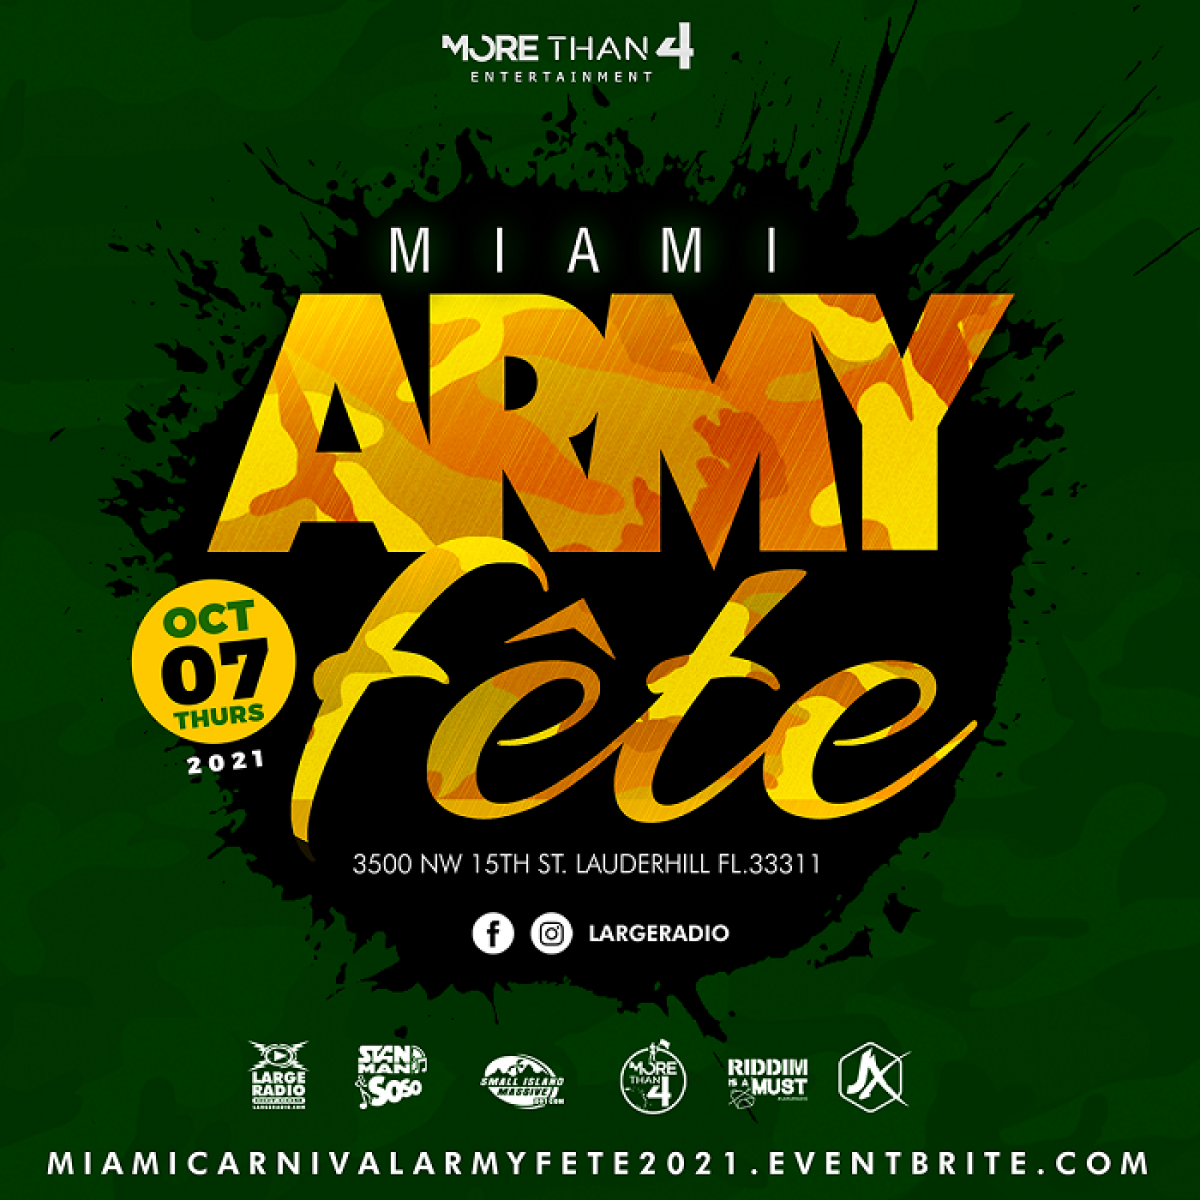 Army Fete Miami flyer or graphic.